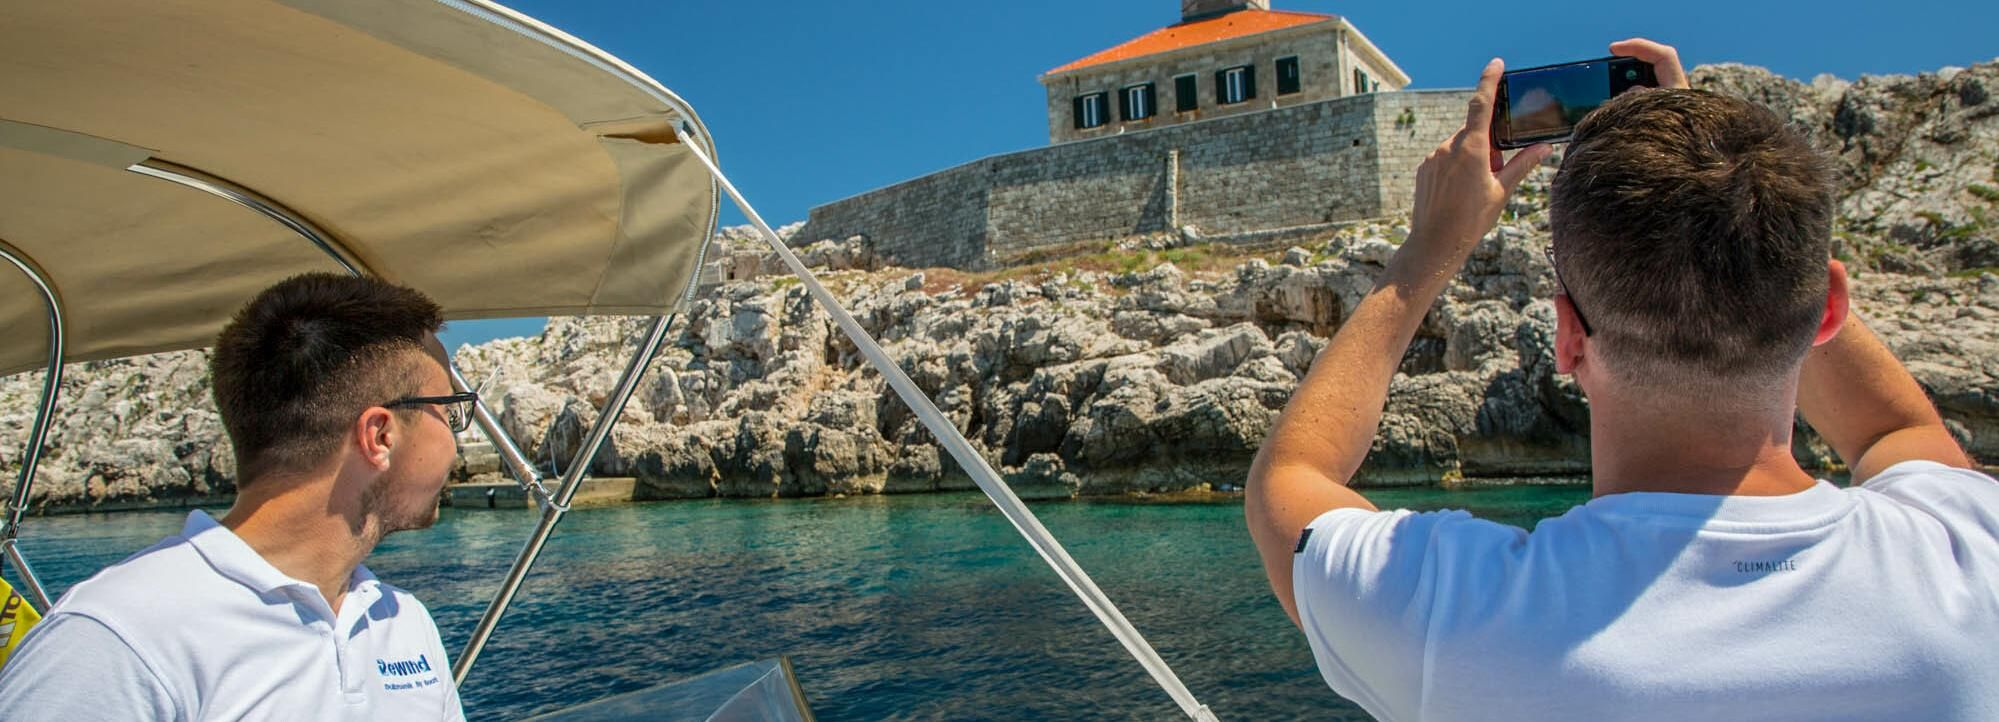 Dubrovnik: Private Full-Day Instagram Boat Tour